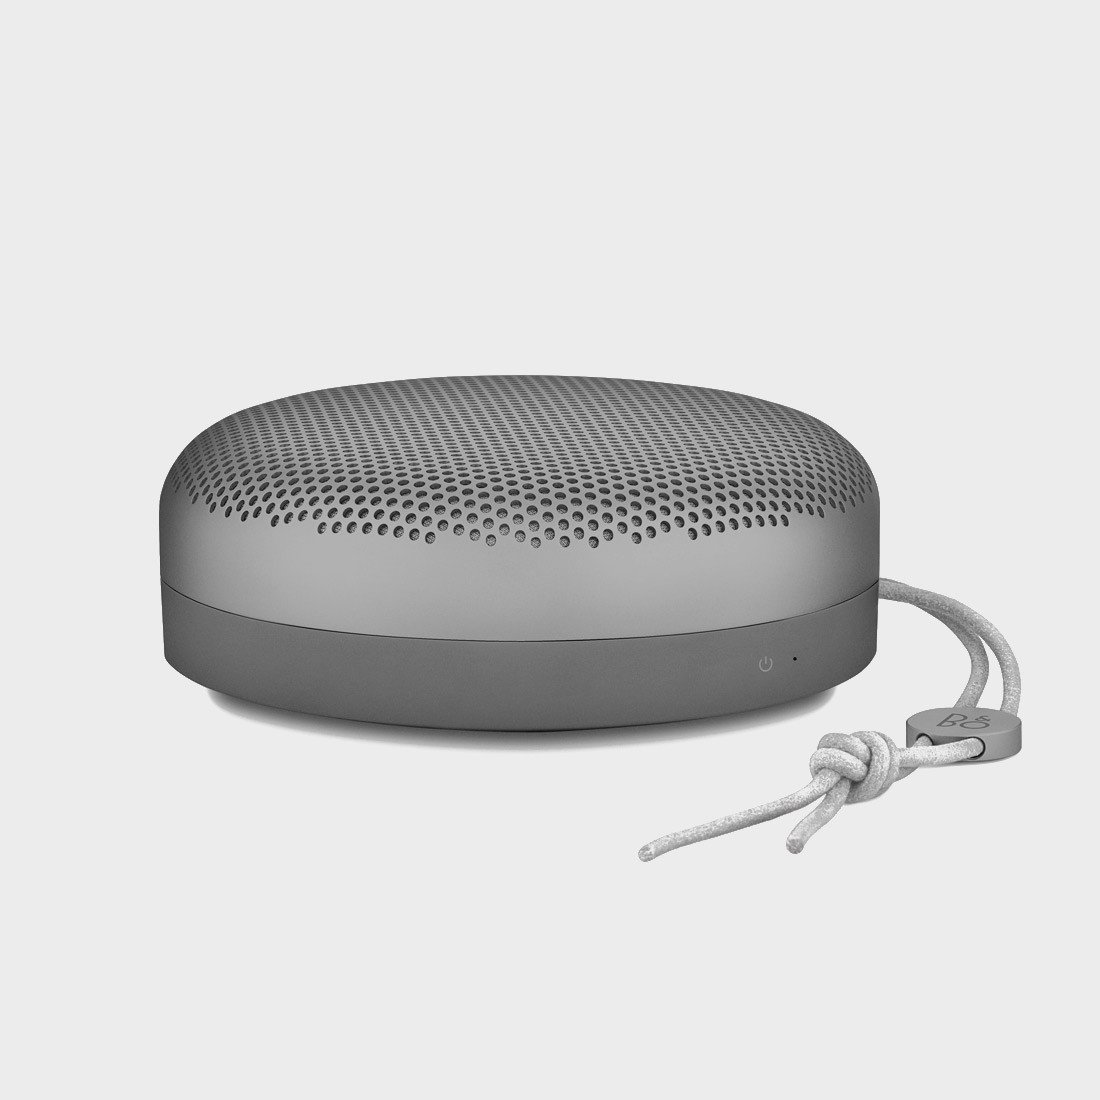 Bang & Olufsen Beoplay A1 Charcoal Speaker